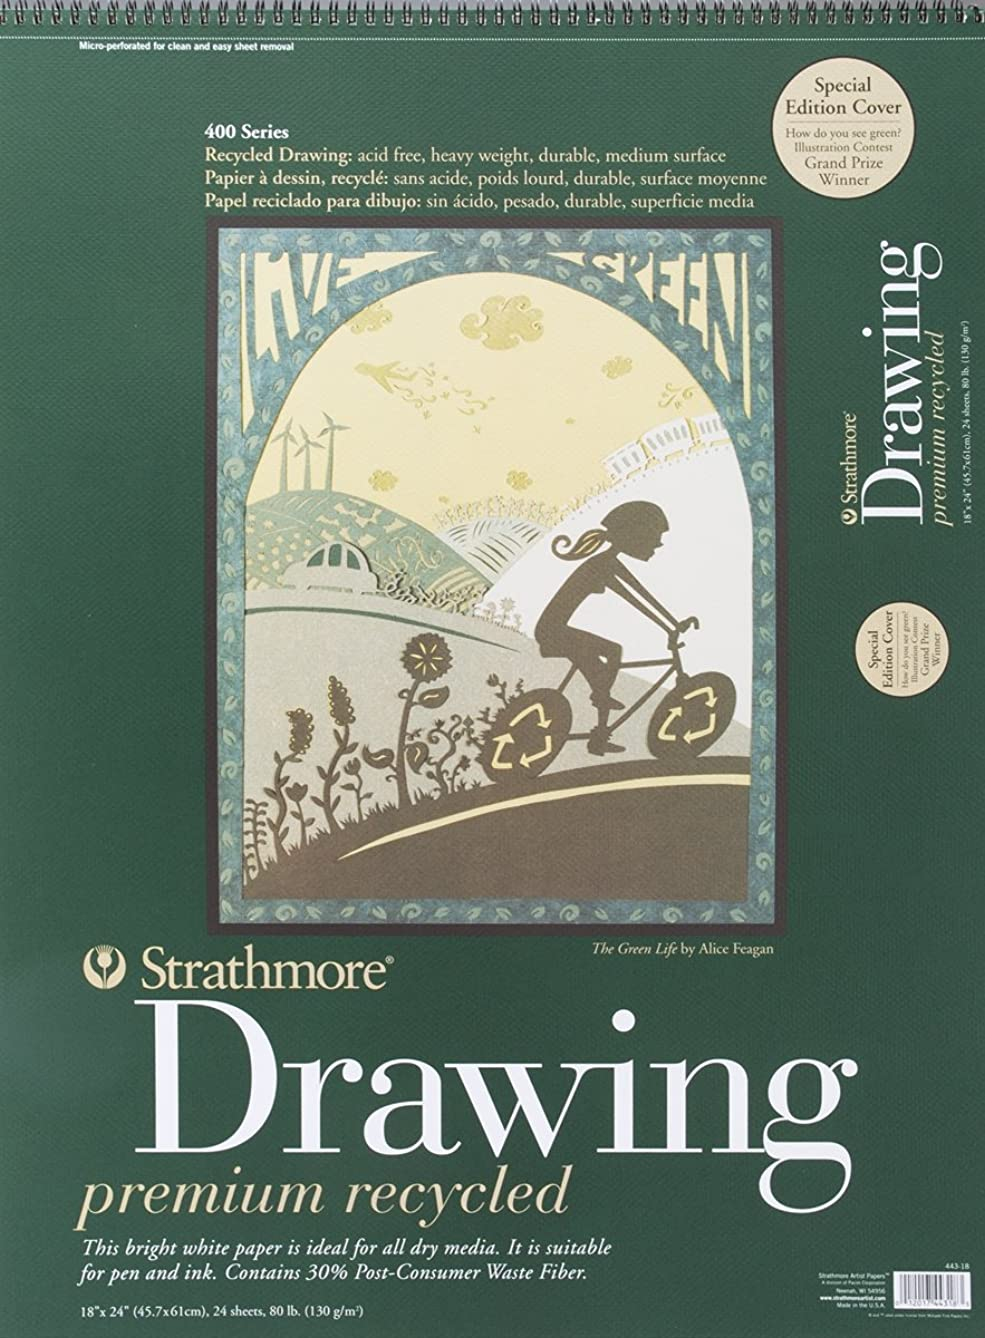 Strathmore 400 Series Recycled Drawing Pad, 18